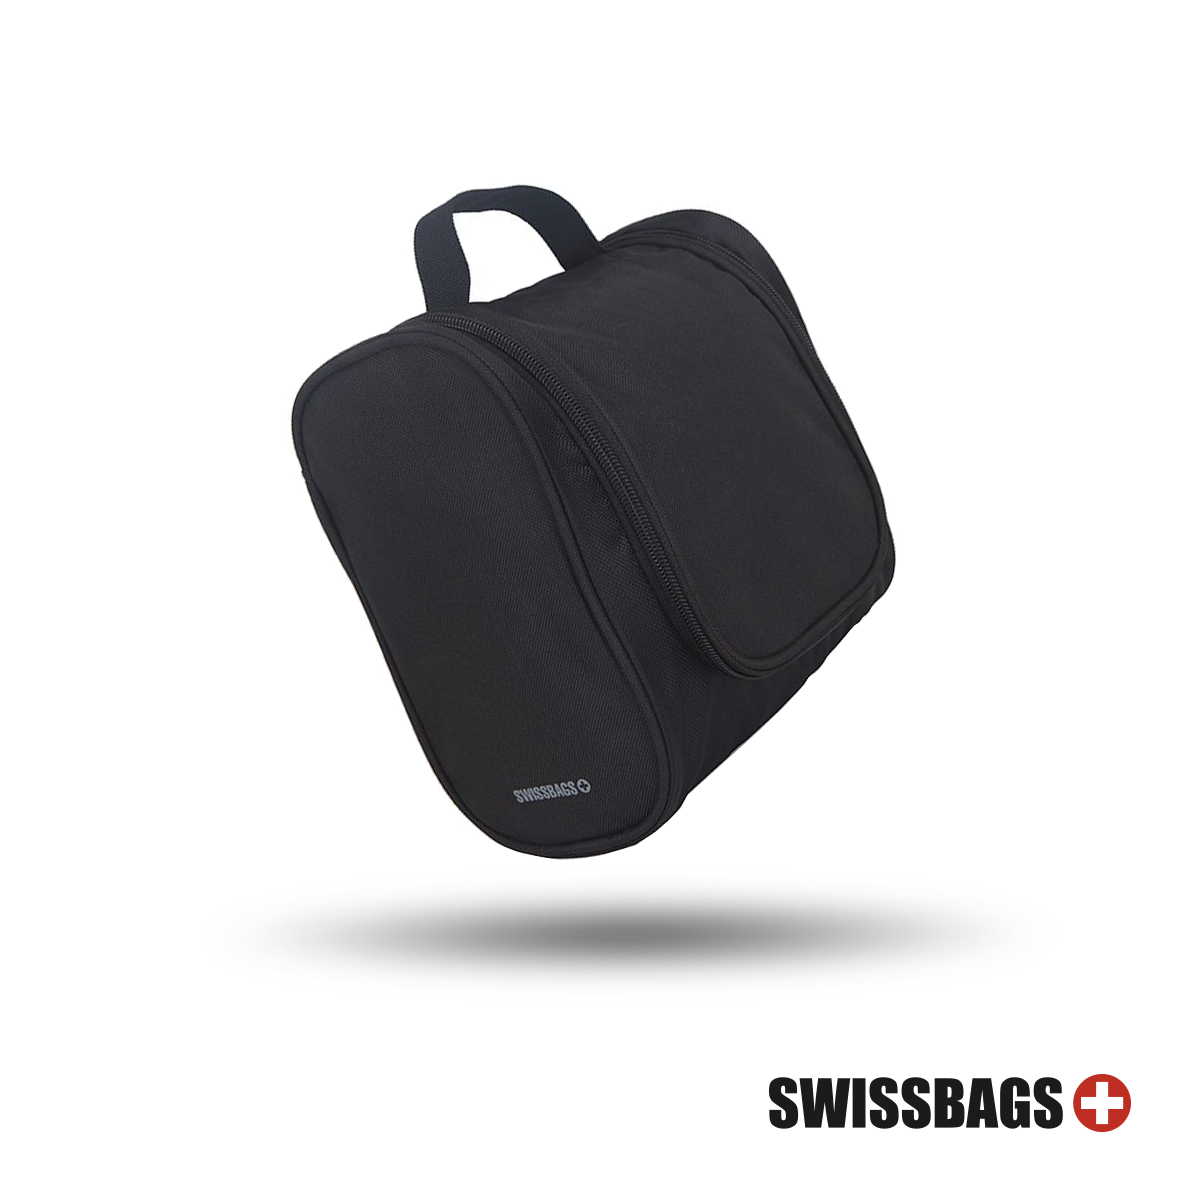 Toilet Bag Baden Swissbags